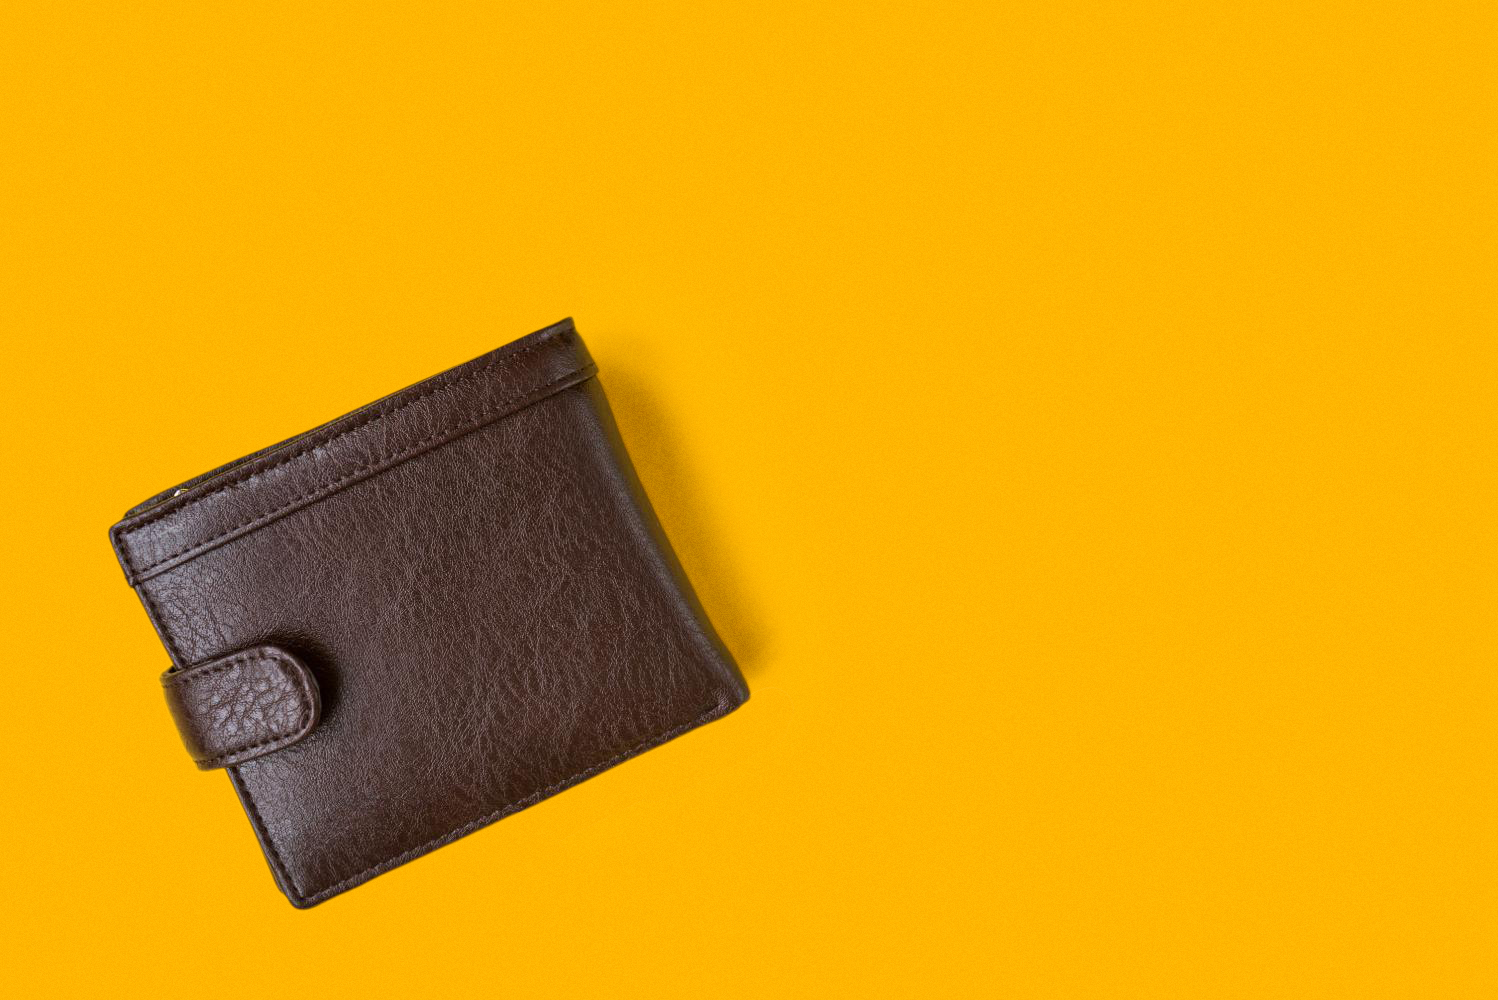 Lone brown wallet on a yellow background